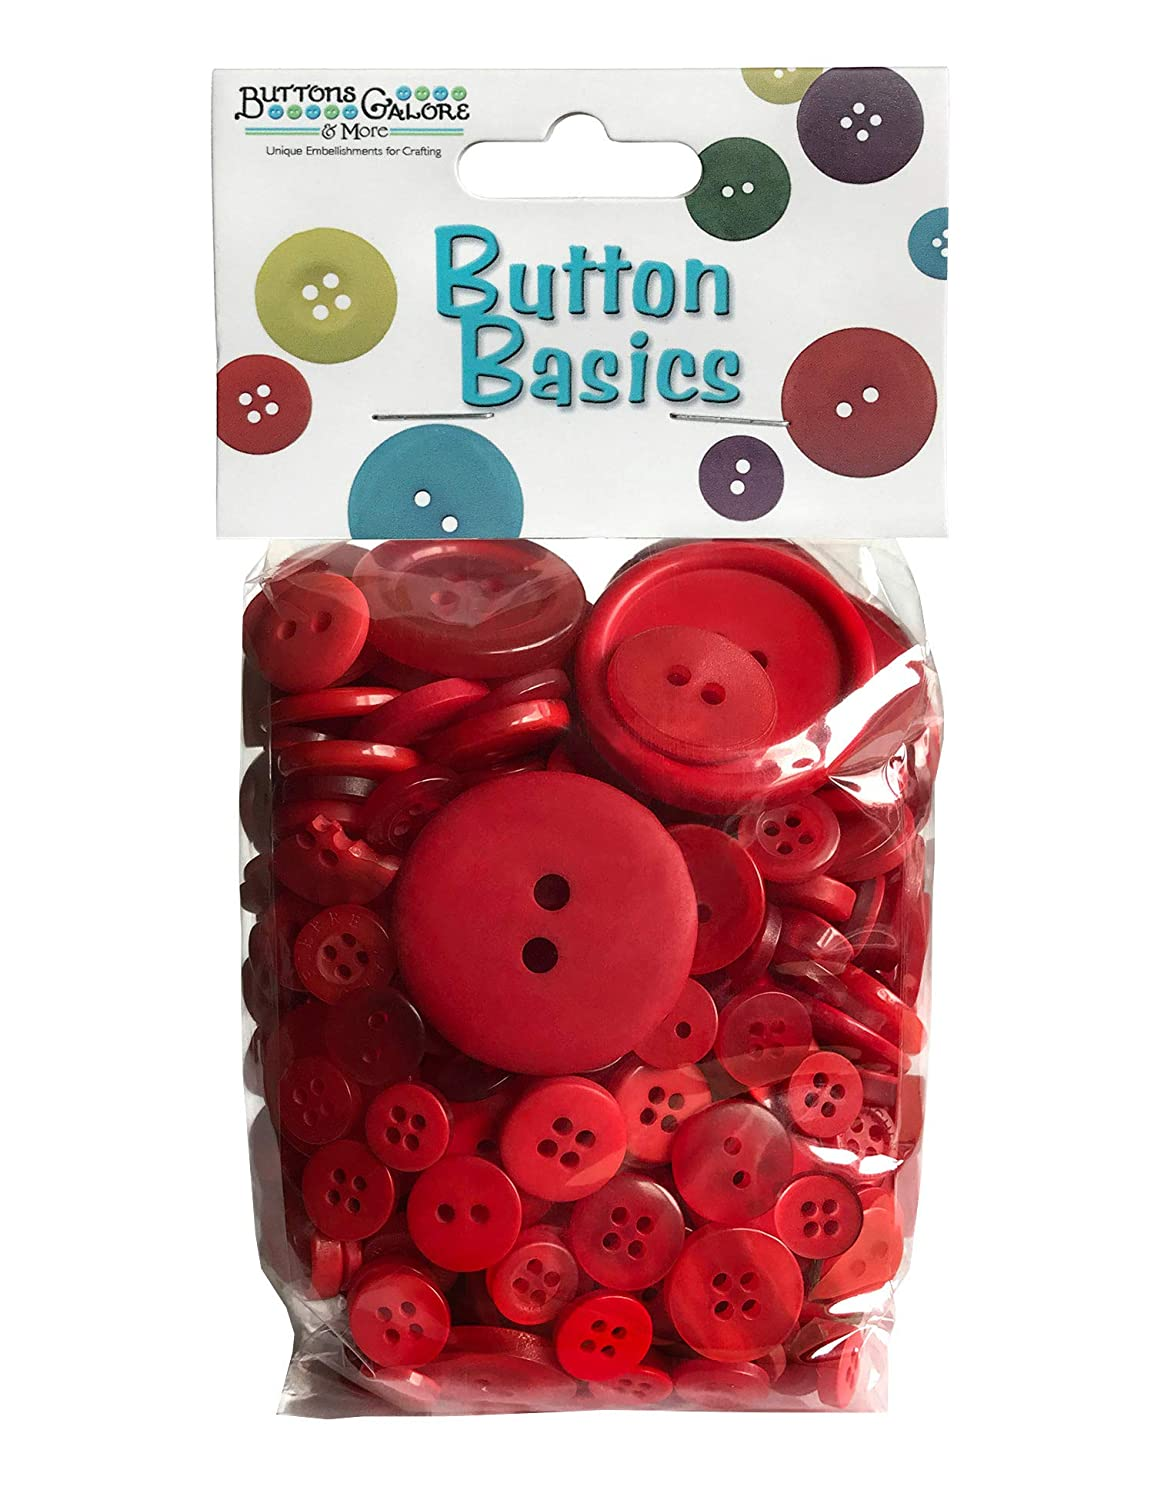 Buttons Galore Hand Dyed Buttons, 5.5-Ounce, Radically Red by Buttons Galore   B00B3I3GU4